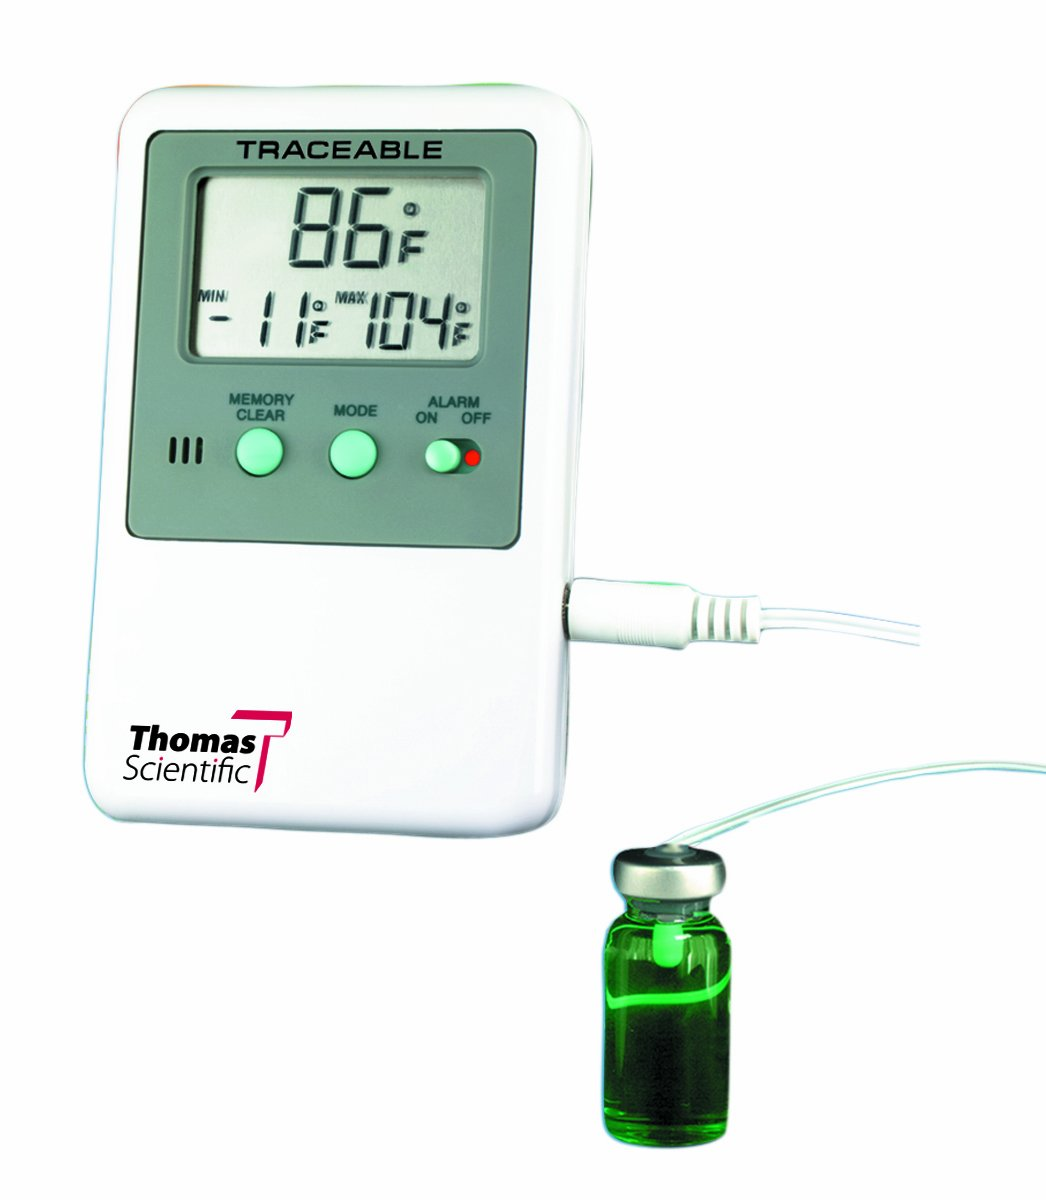 Thomas ABS Plastic Traceable Refrigerator and Freezer Thermometer, with Bottle Probe, -58 to 158 degree F, -50 to 70 degree C